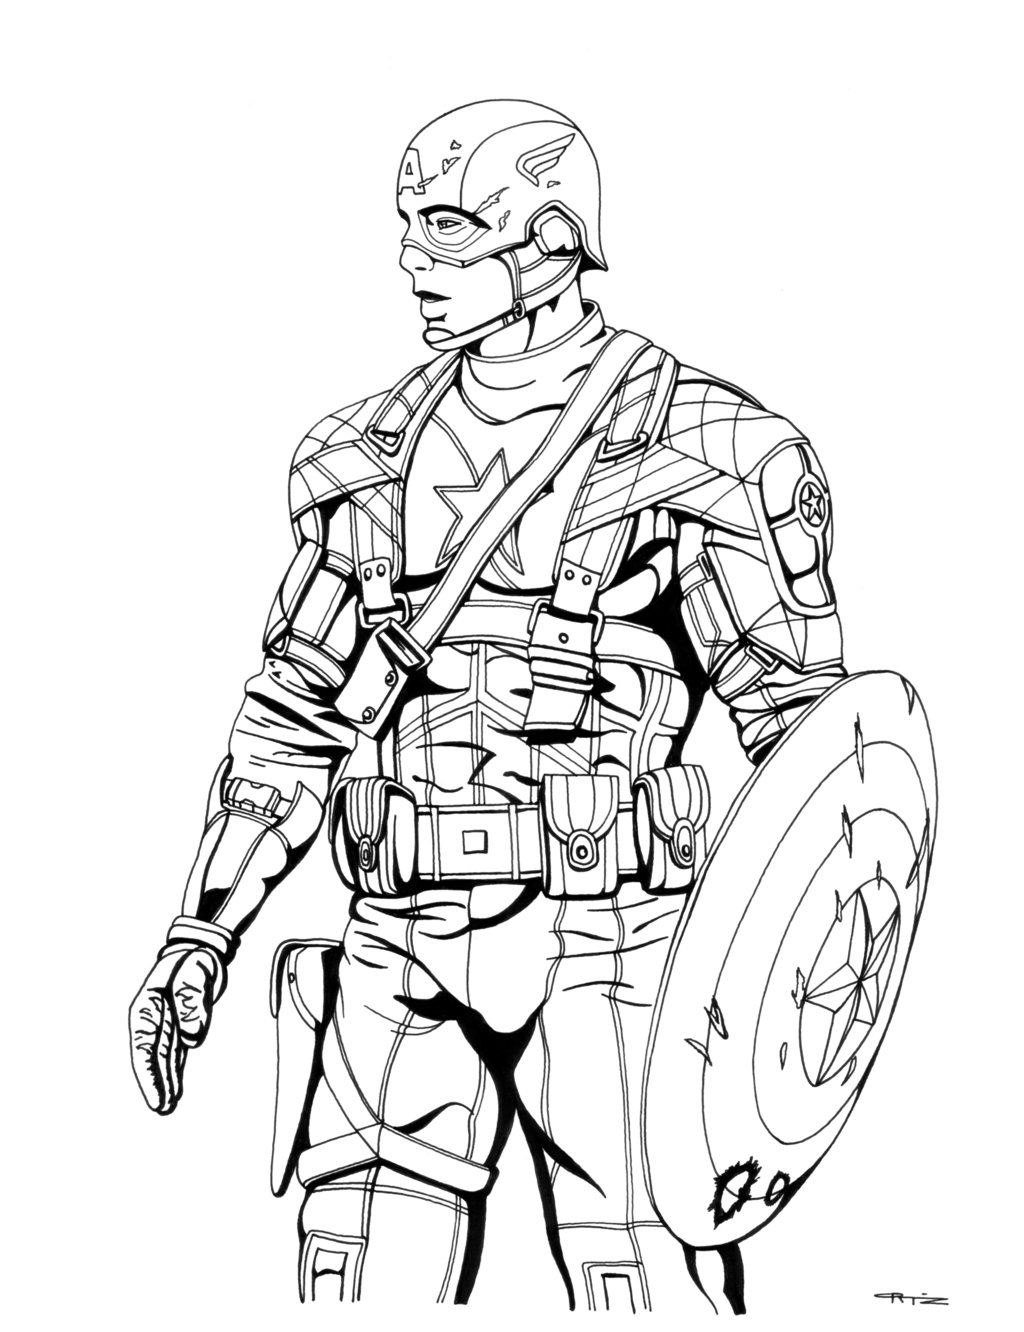 Captain America The First Avenger Coloring Pages Gallery destiné Coloriage Captain America